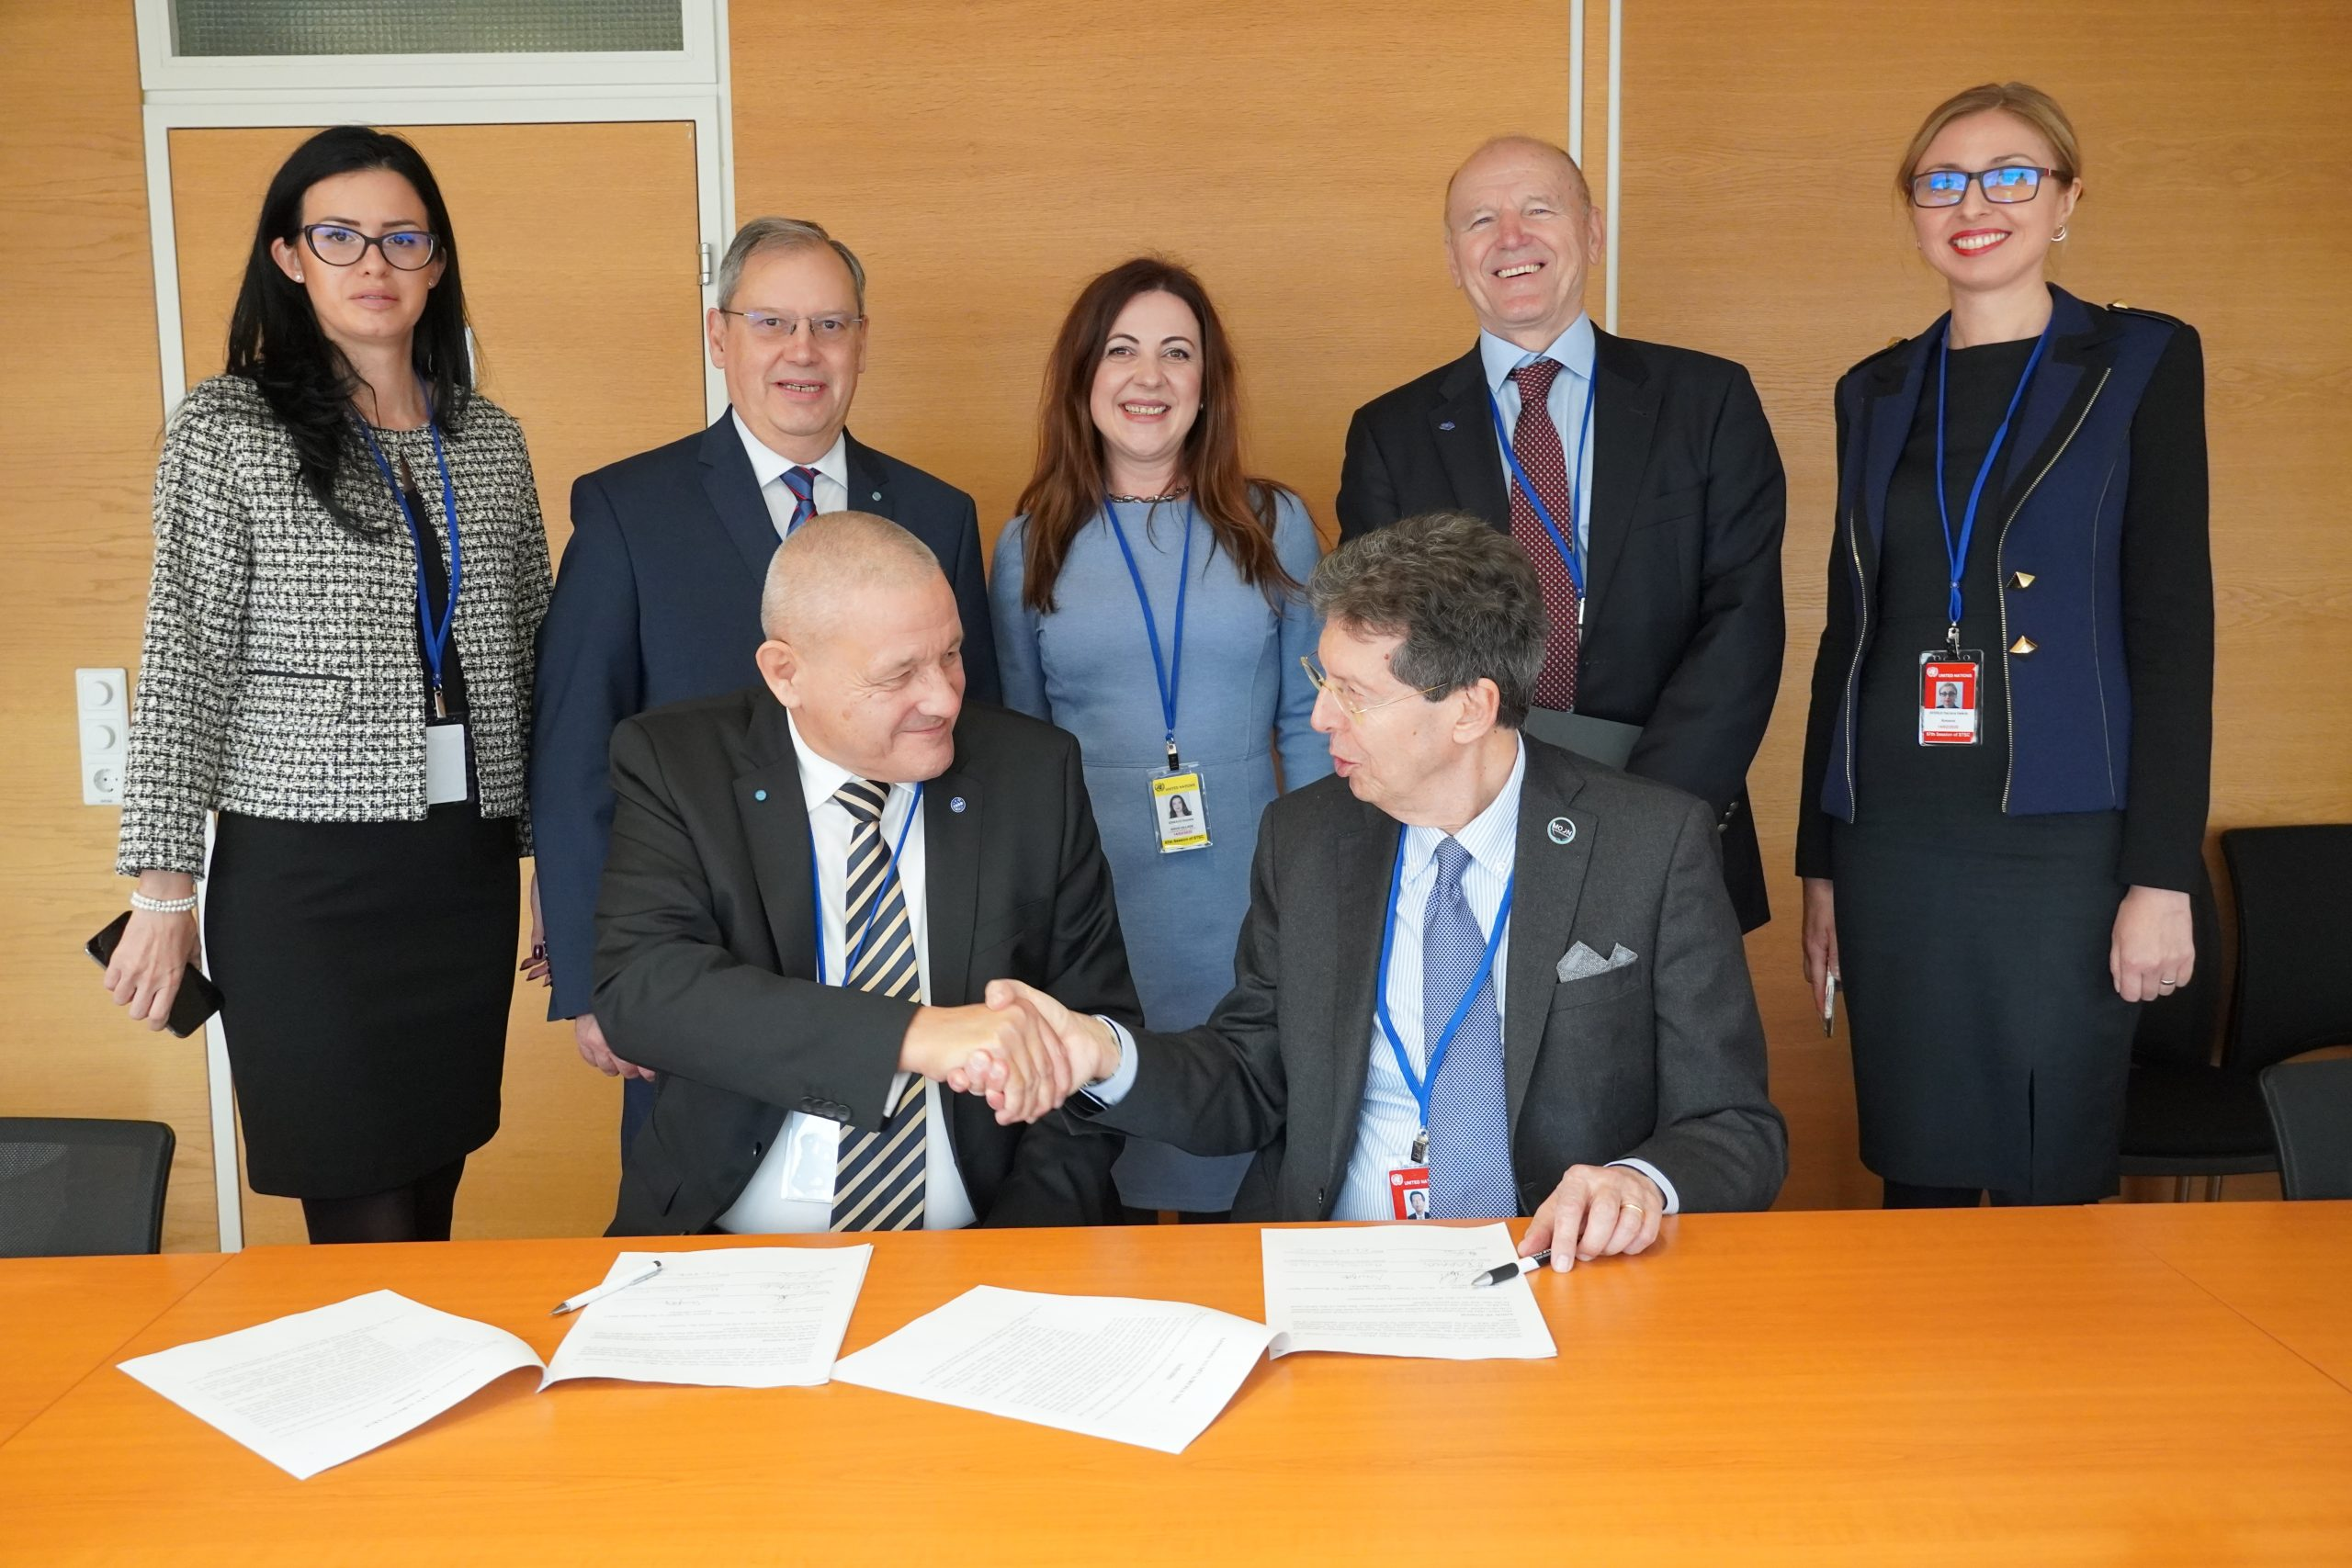 Press Release – Moon Village Association (MVA) and Romanian Space Agency (ROSA) signed a Memorandum of Understanding for space promoting